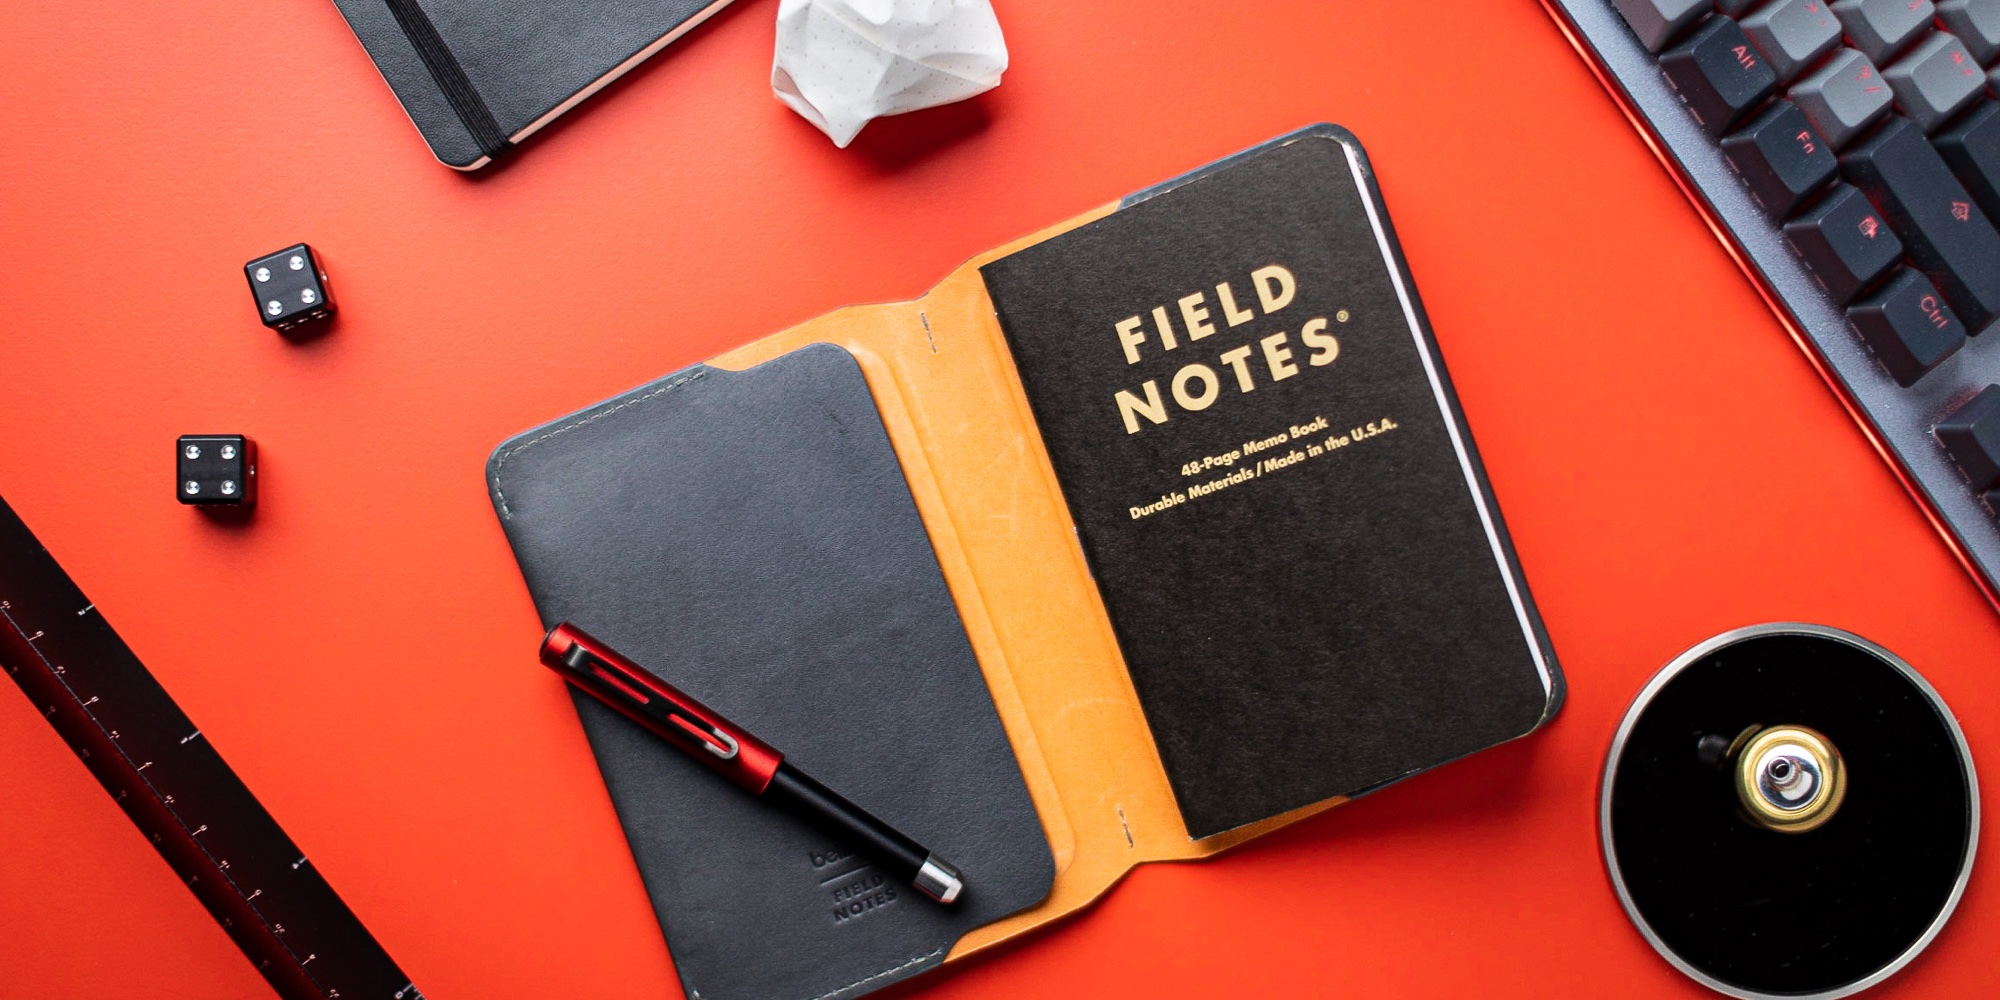 Spoke Roady and Field Notes